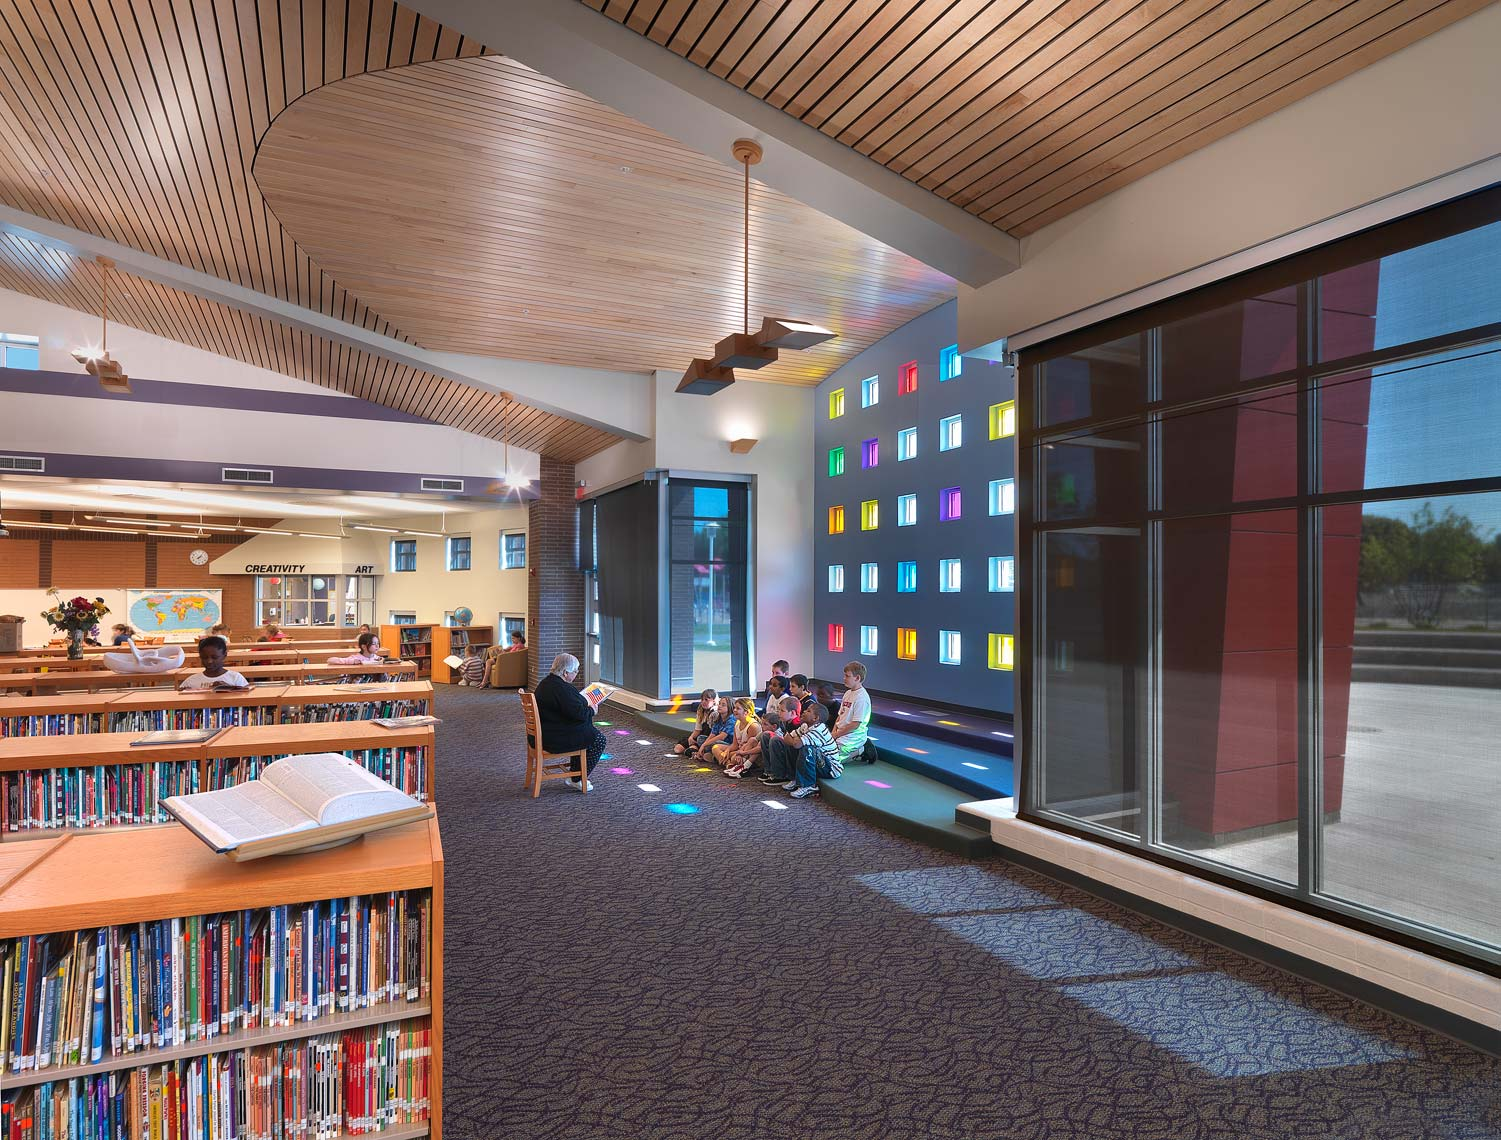 Westview Elementary Warren | Maylone Architectural Photo